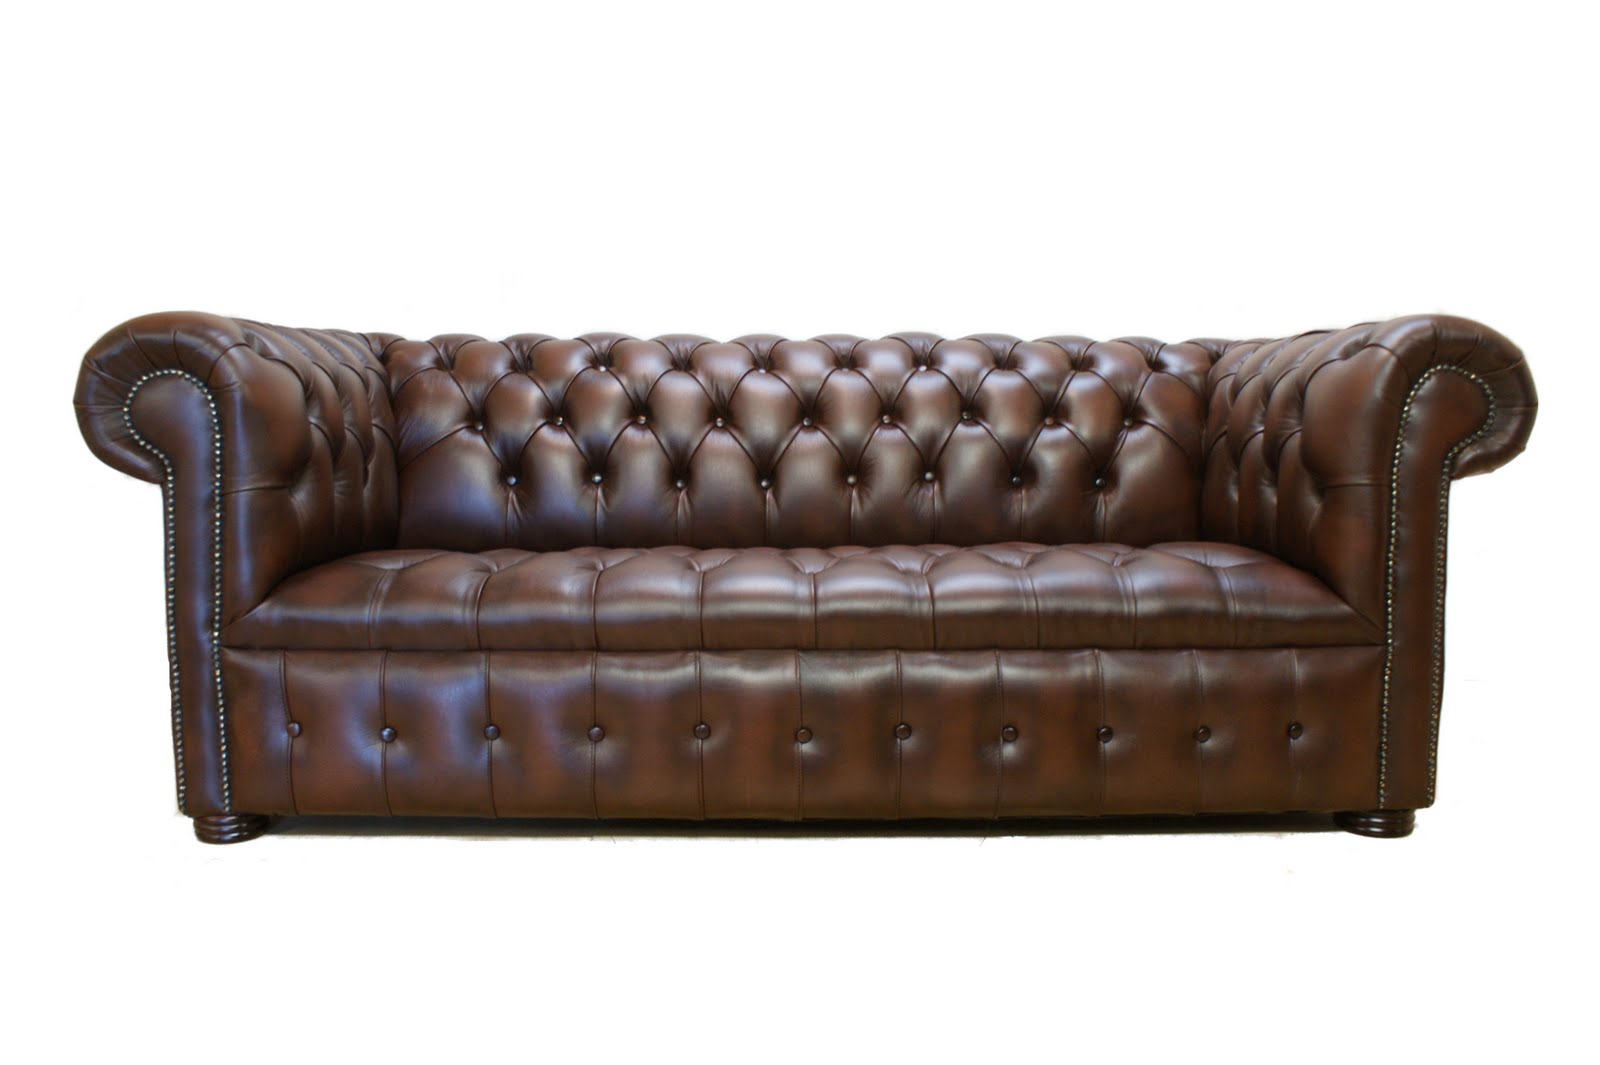 chesterfield sofas chesterfield sofa fabric. Black Bedroom Furniture Sets. Home Design Ideas